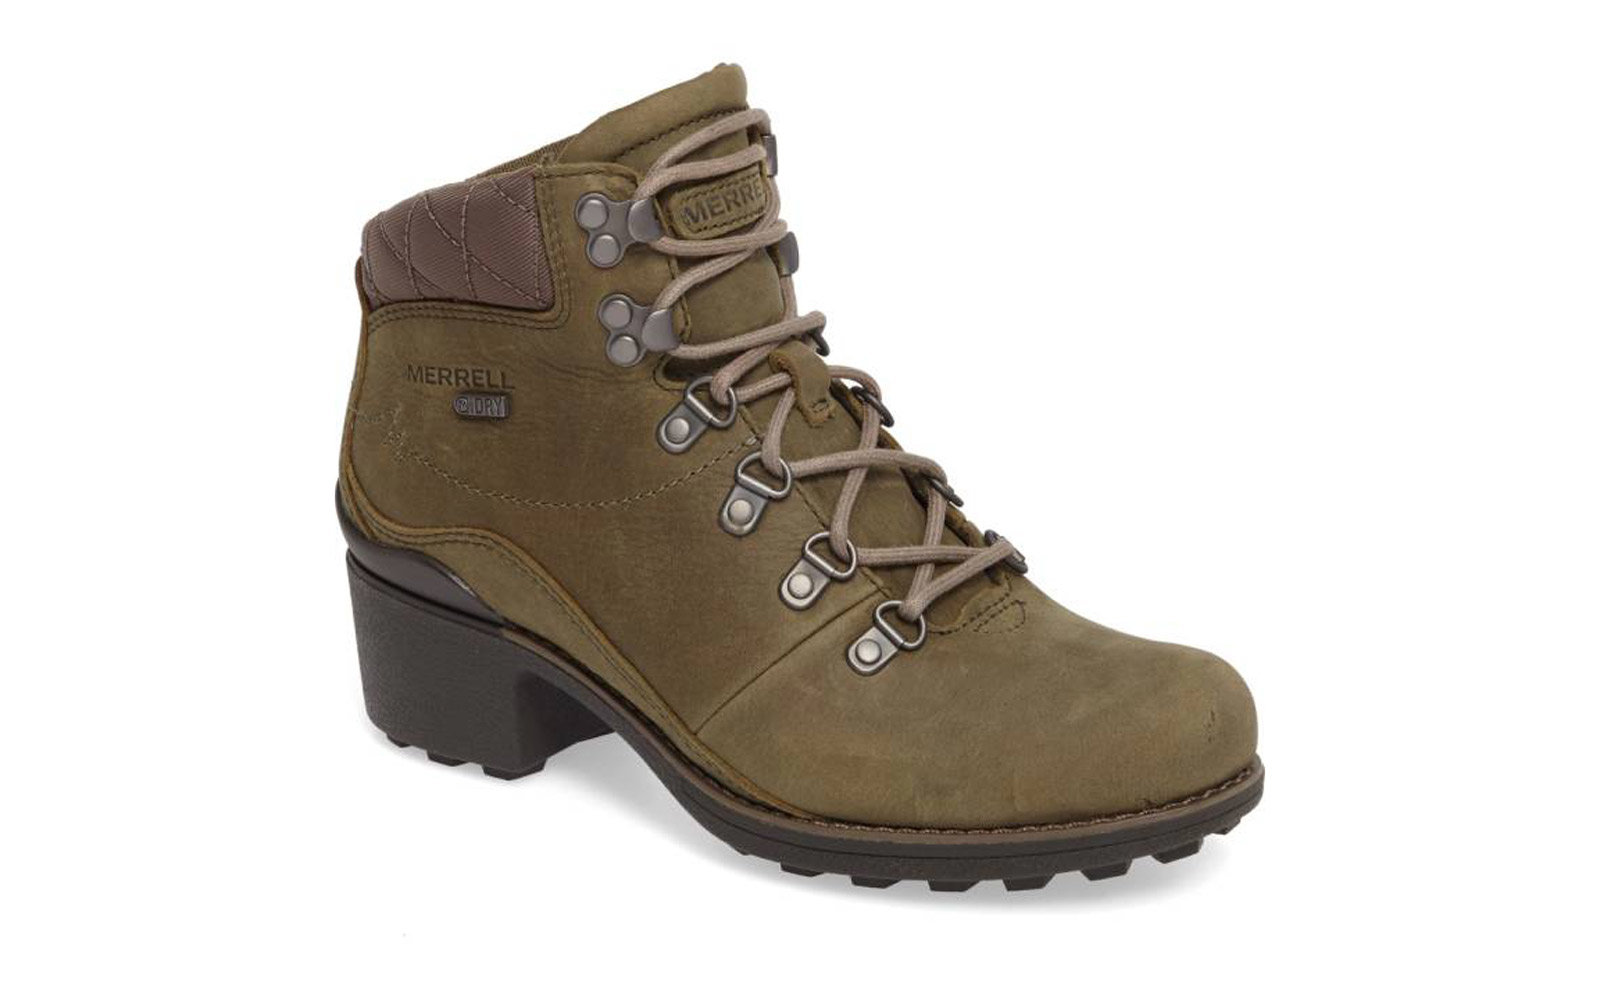 Merrell Chateau Mid Lace Waterproof Bootie